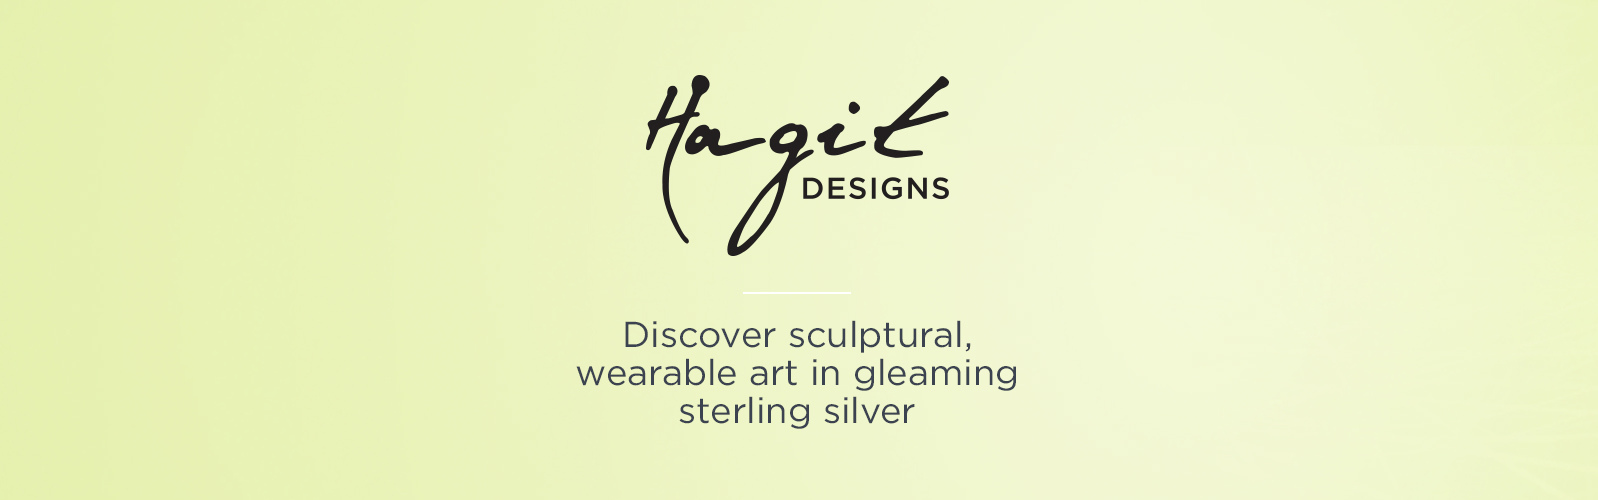 Hagit — Discover sculptural, wearable art in gleaming sterling silver